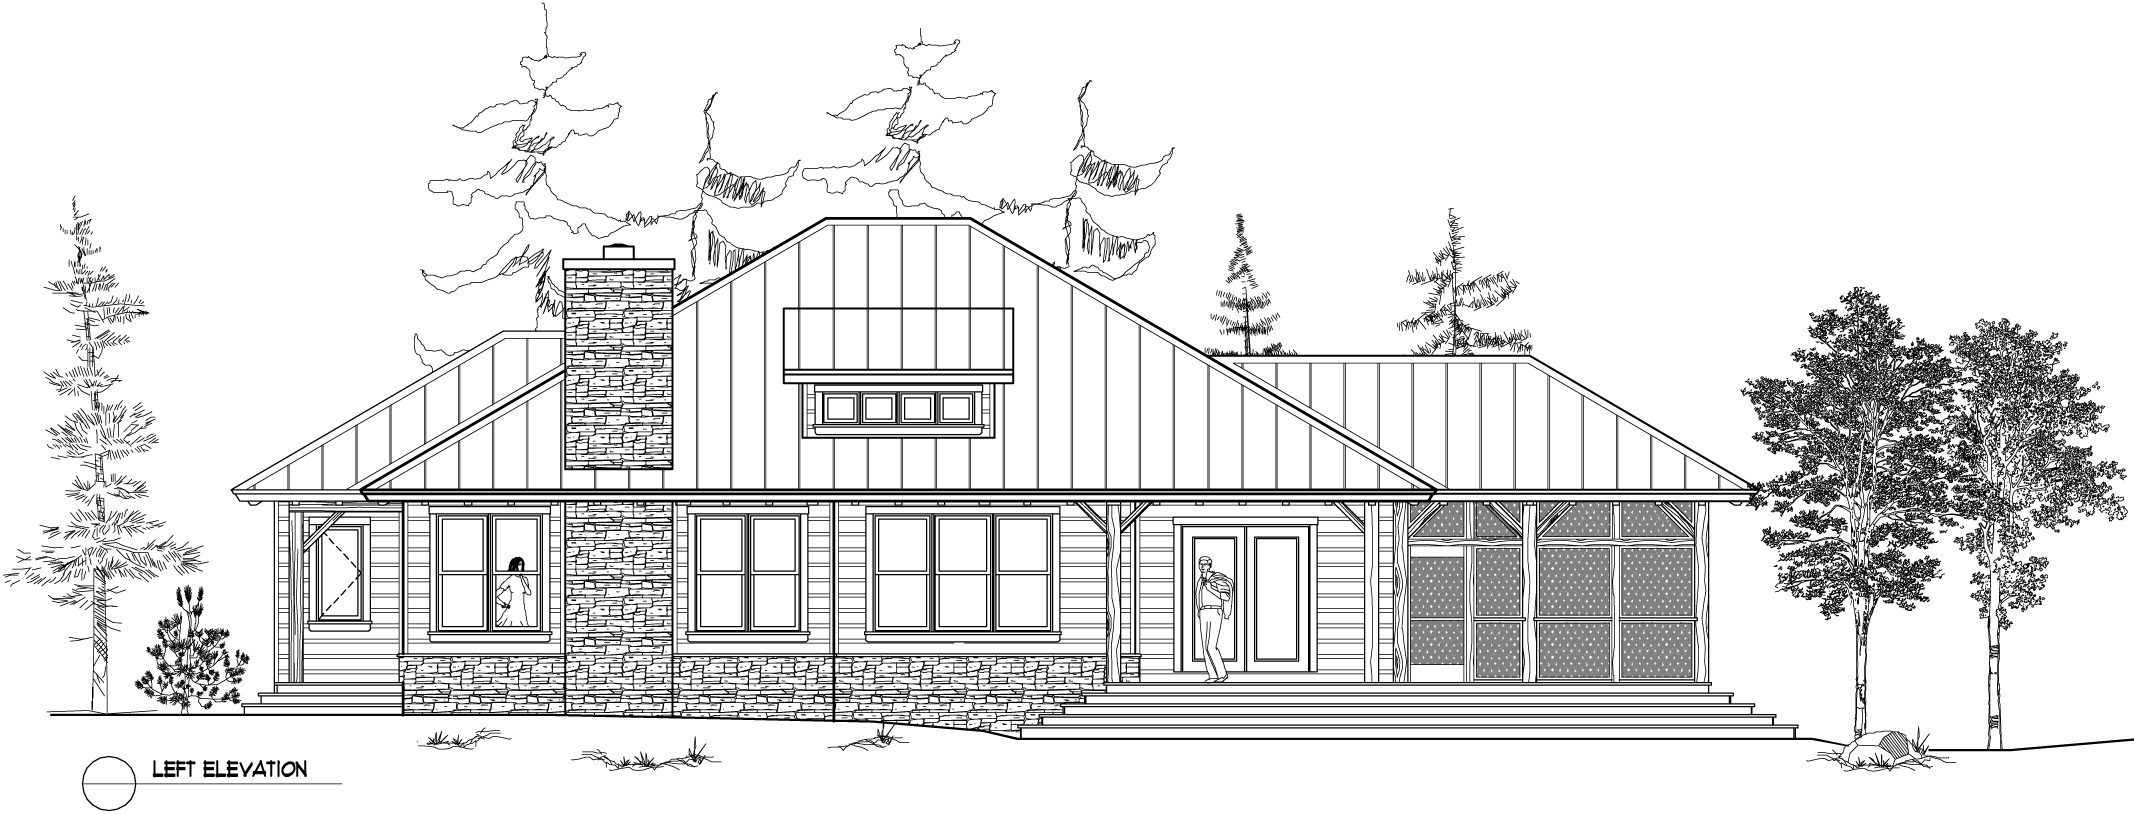 Normerica Timber Frame, House Plan, The Baril 3514, Left Elevation